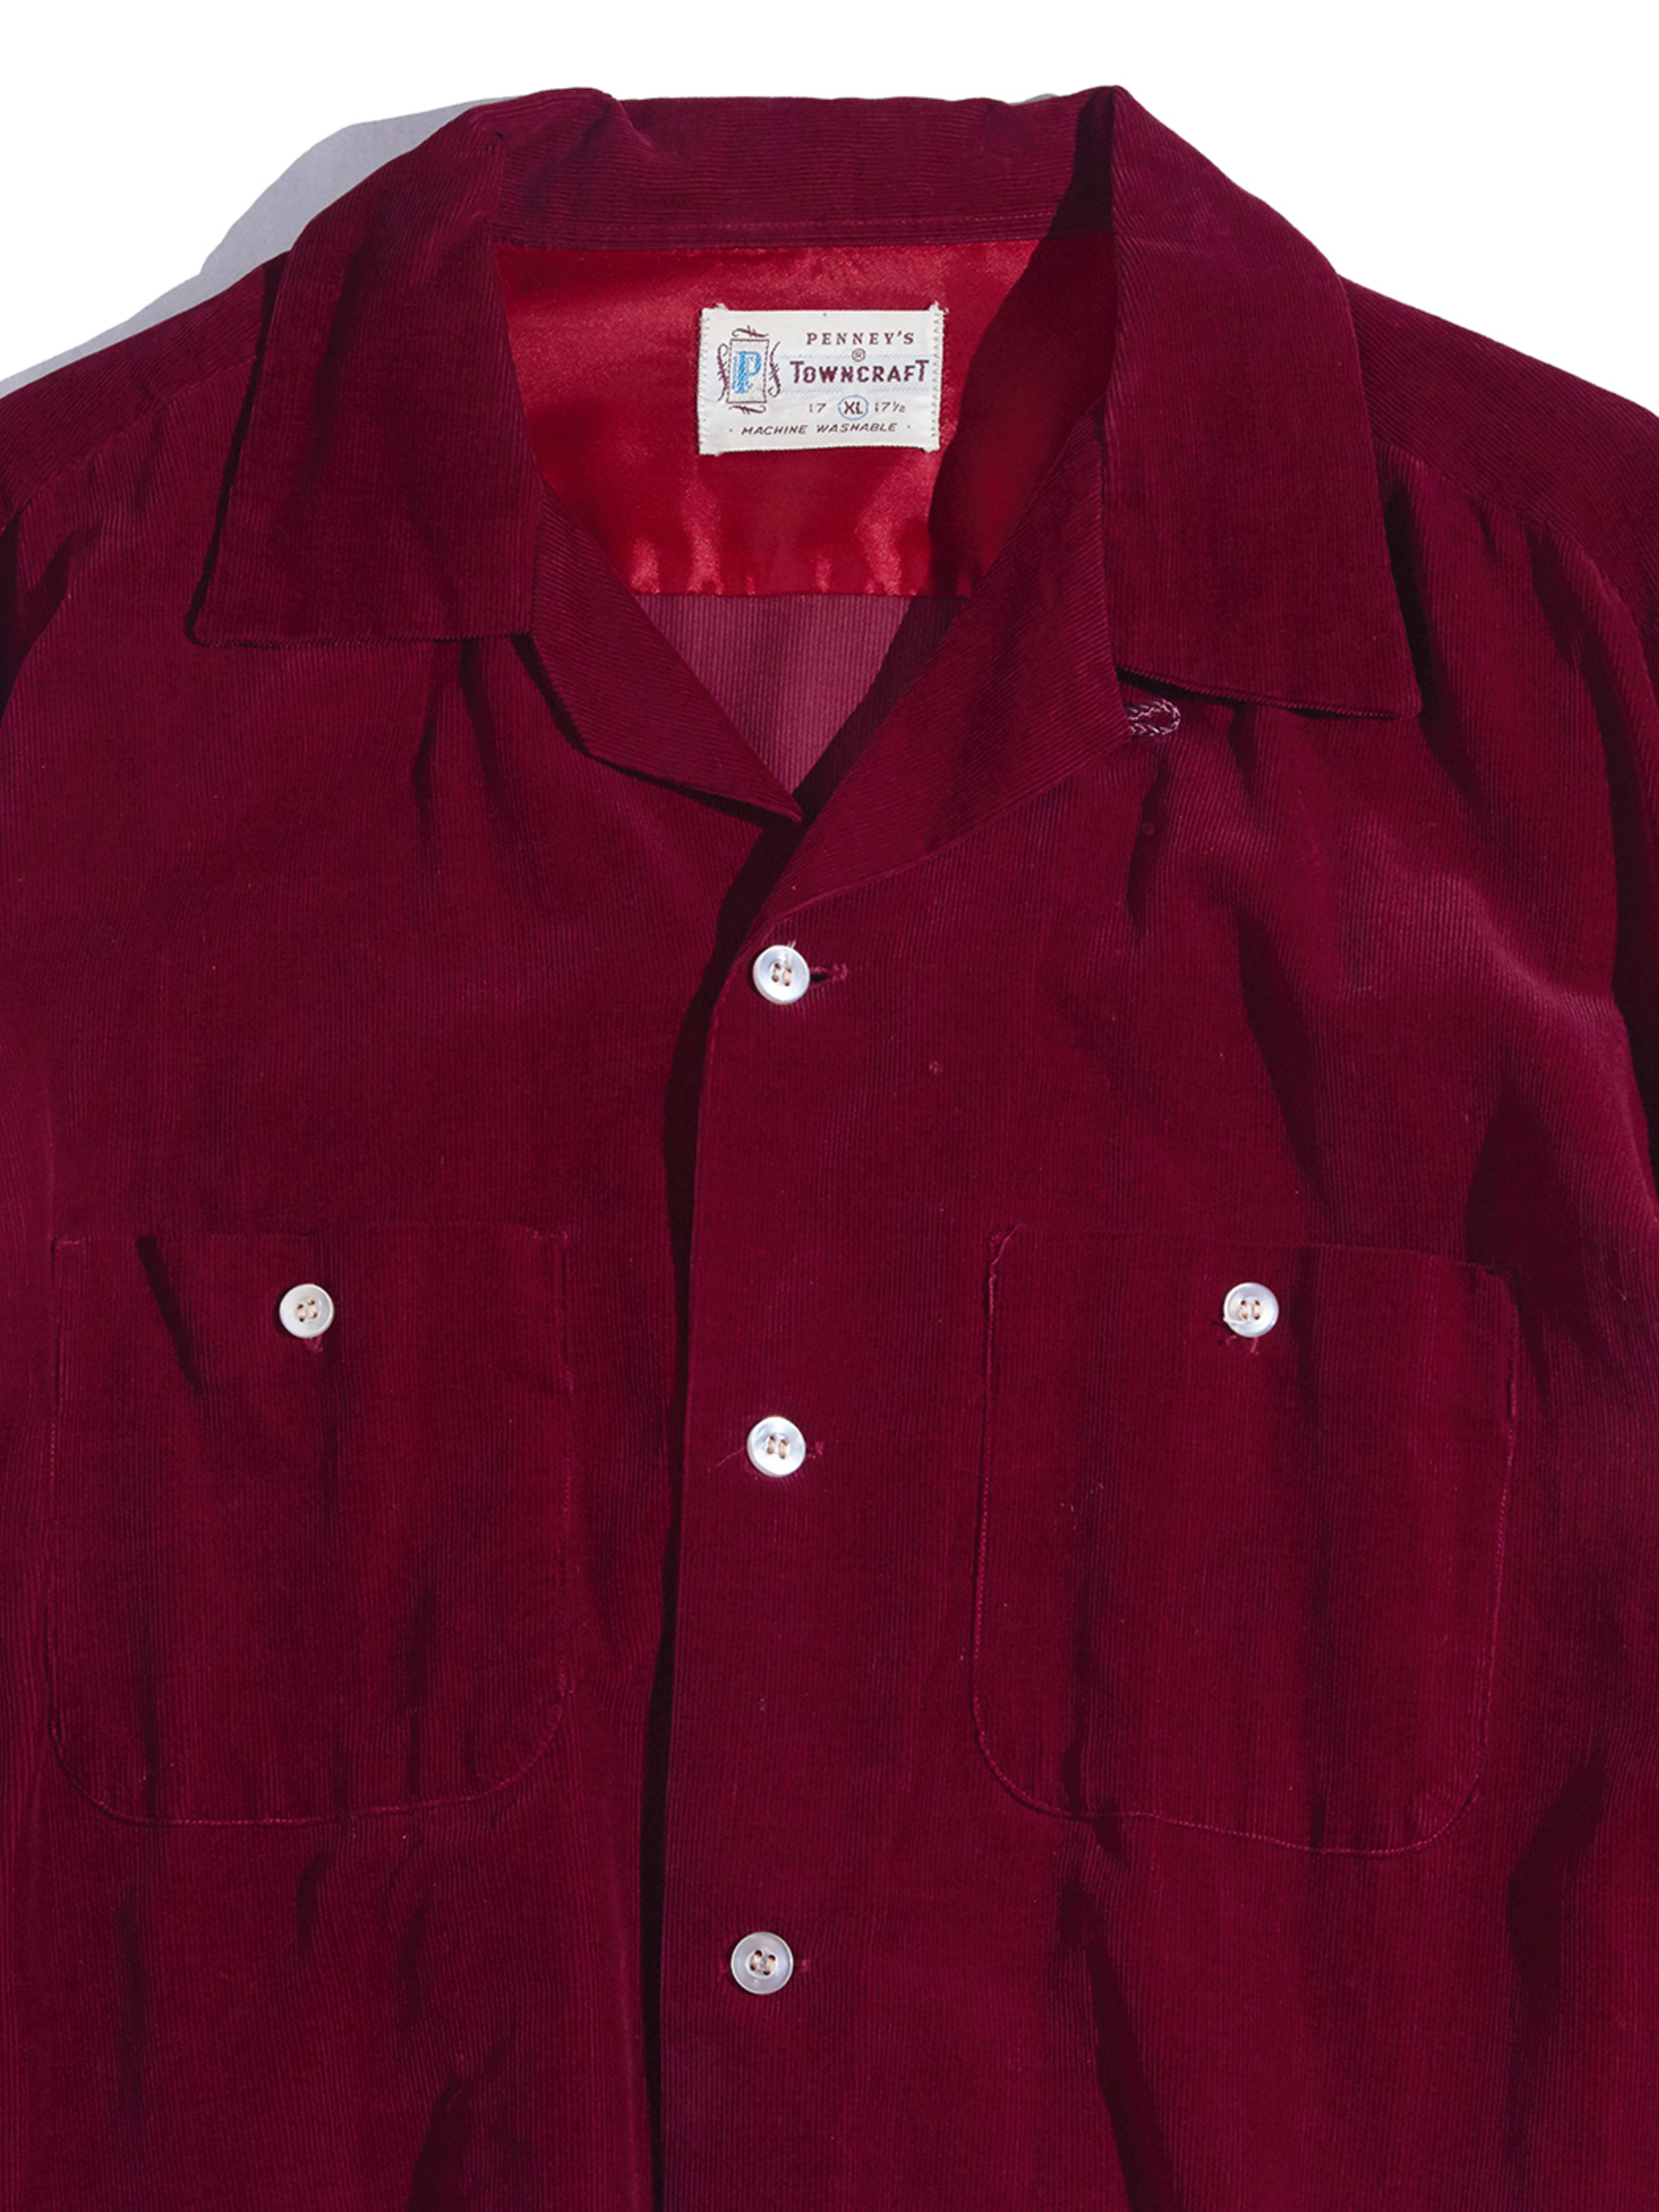 """1950s """"TOWNCRAFT"""" corduroy shirt -WINE RED-"""